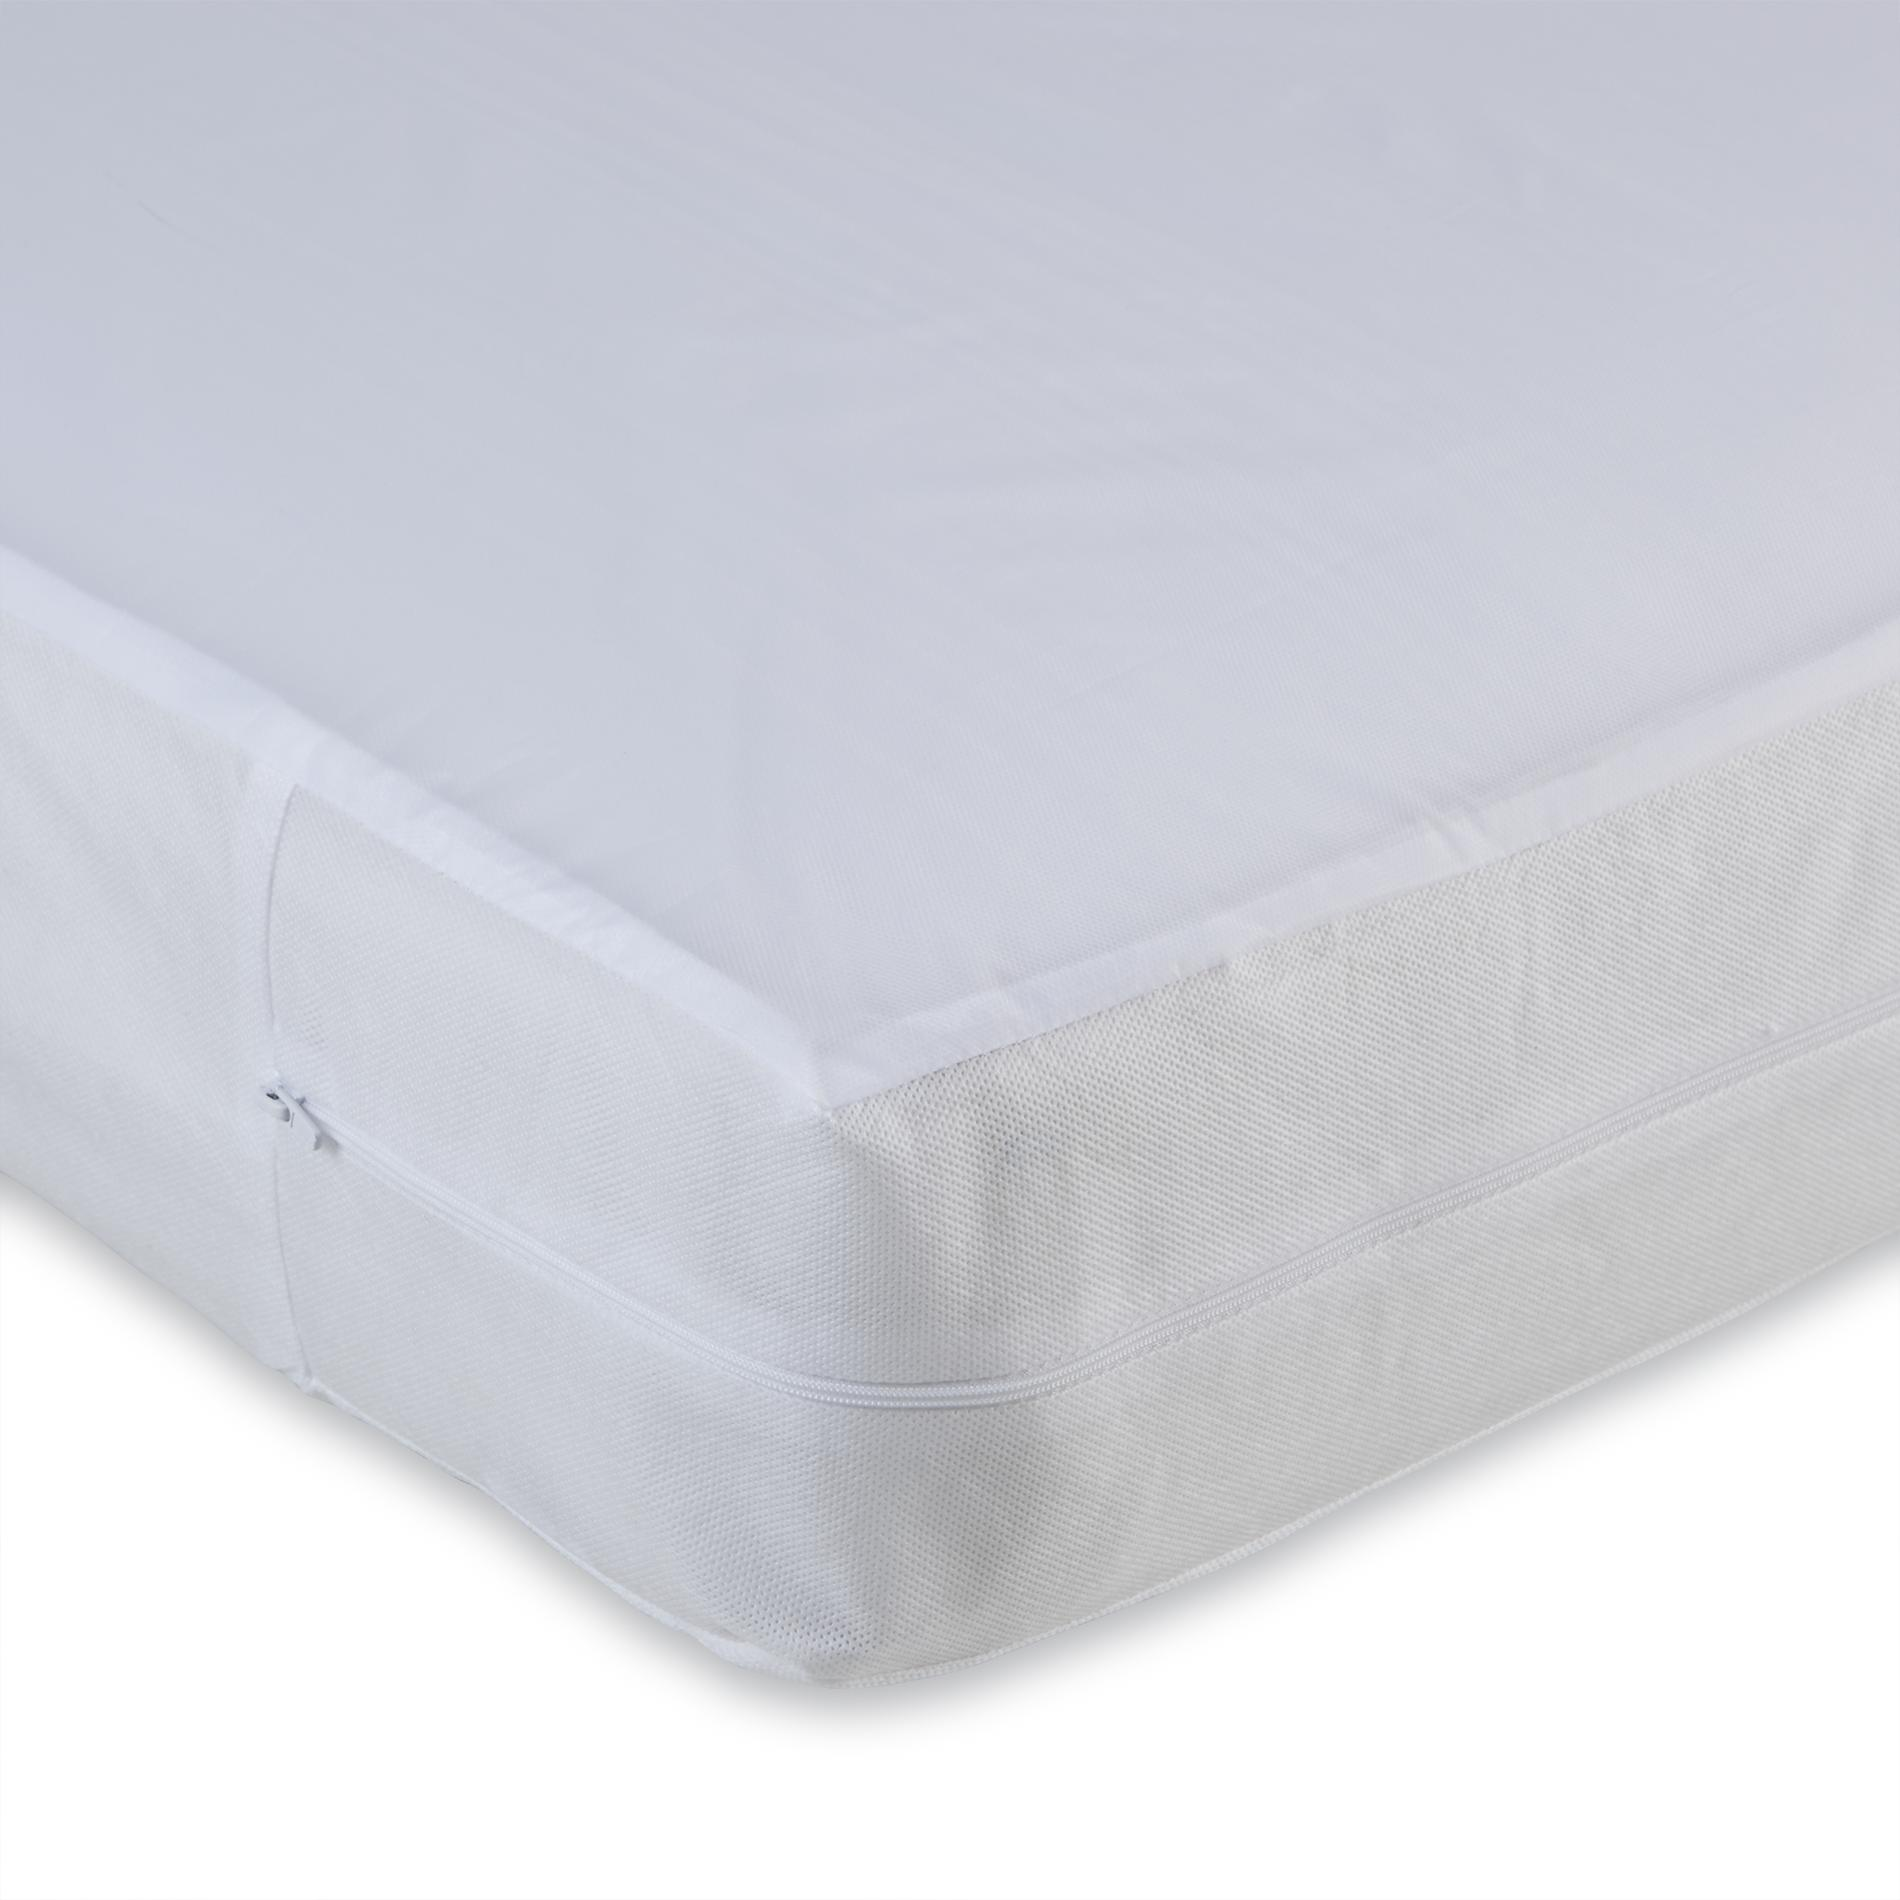 Baby Mattress Kmart Summer Infants Zippered Crib Mattress Protector